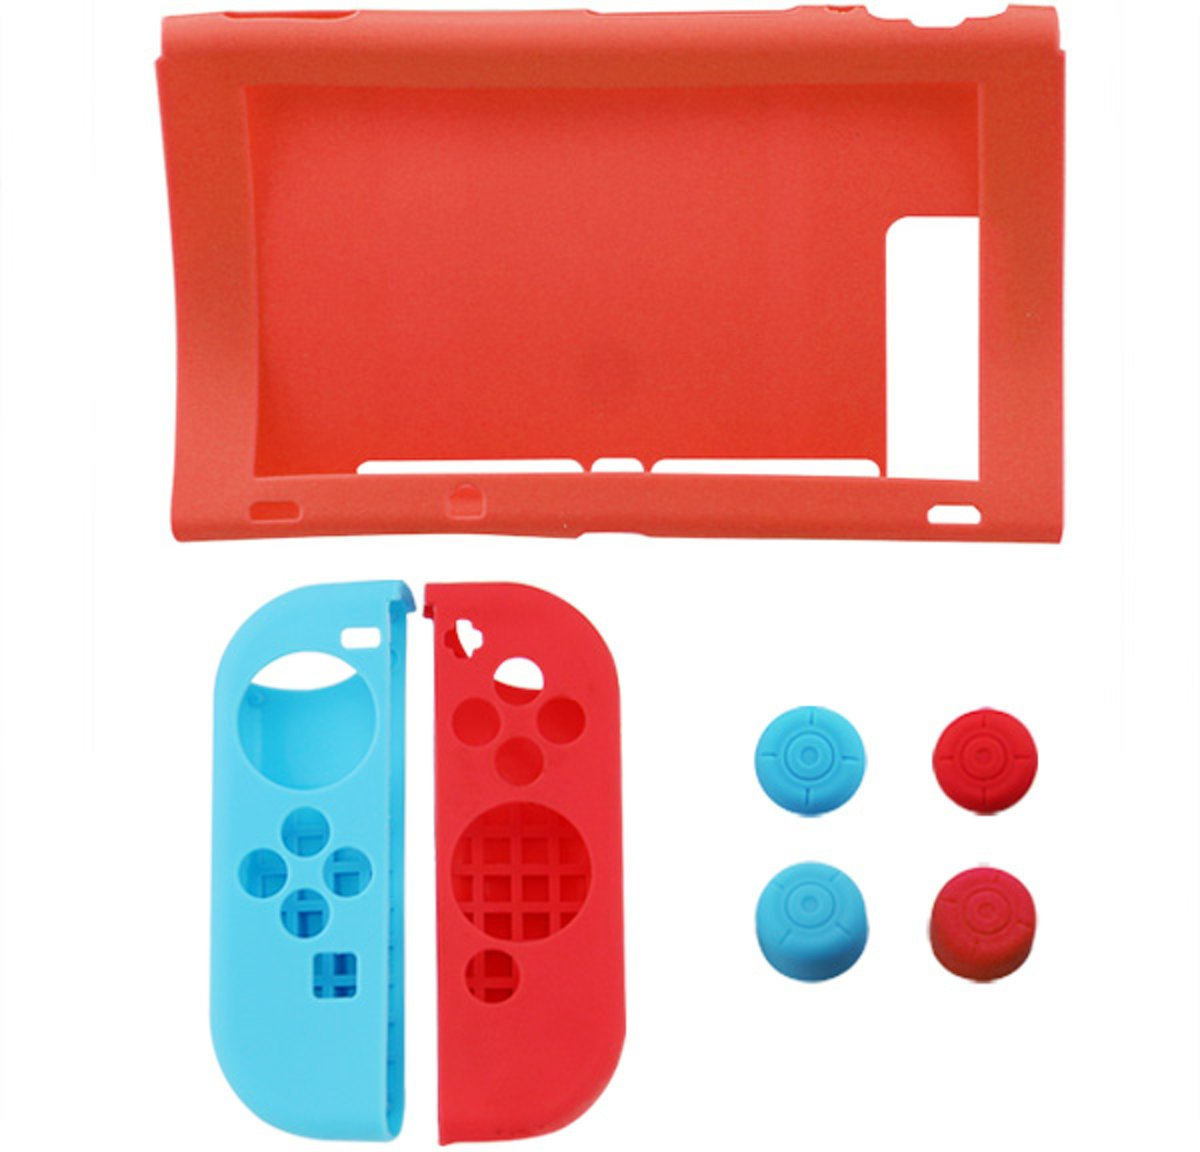 Nintendo Switch - Siliconen case set